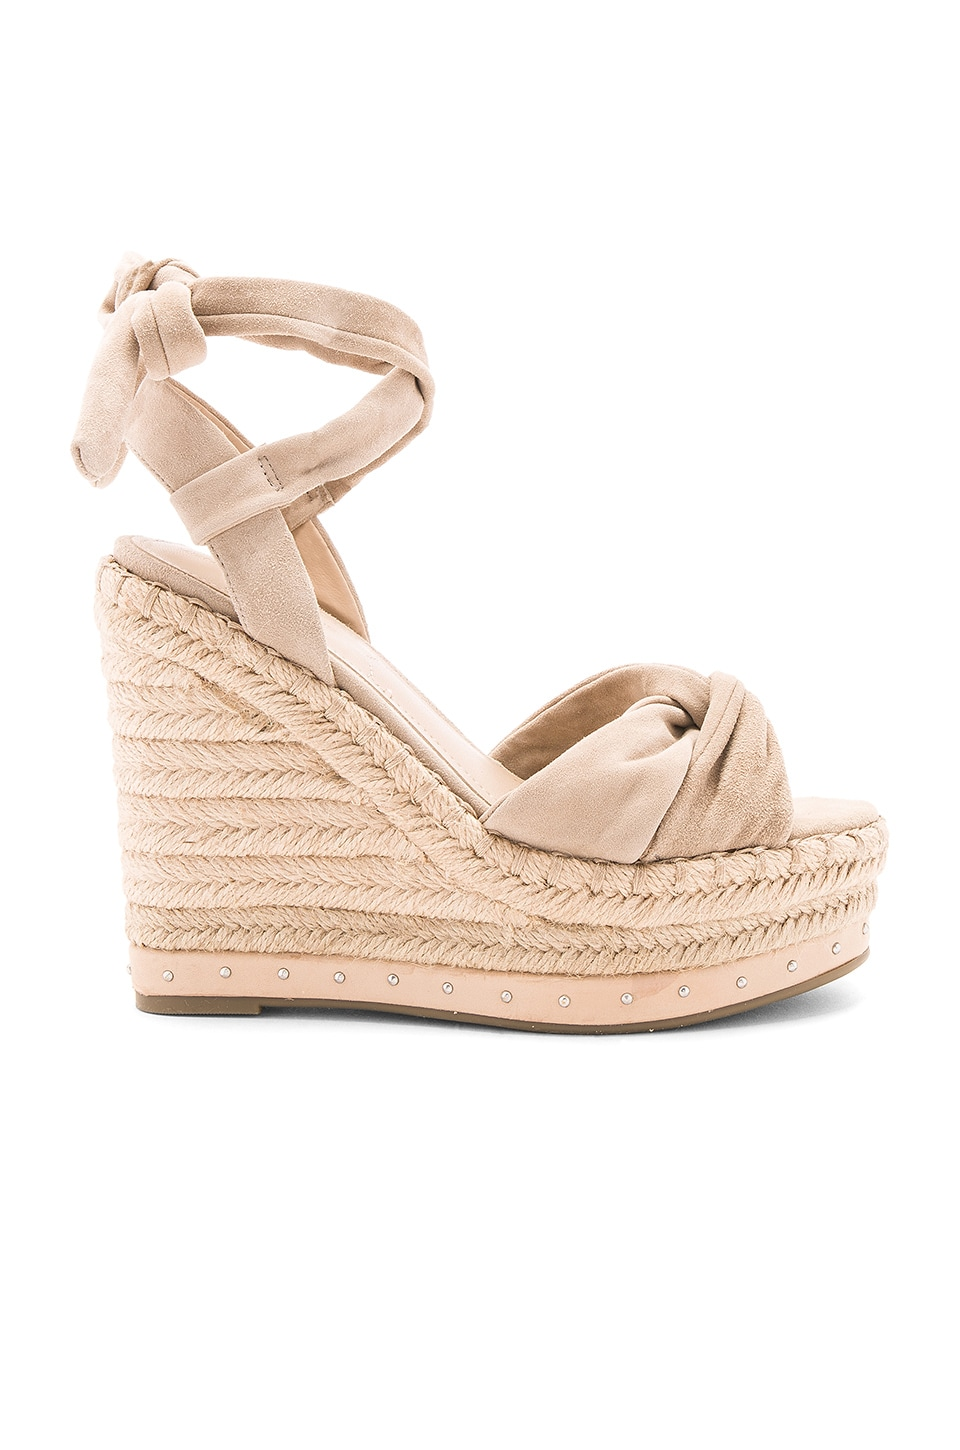 KENDALL + KYLIE Grayce Wedge in Sand